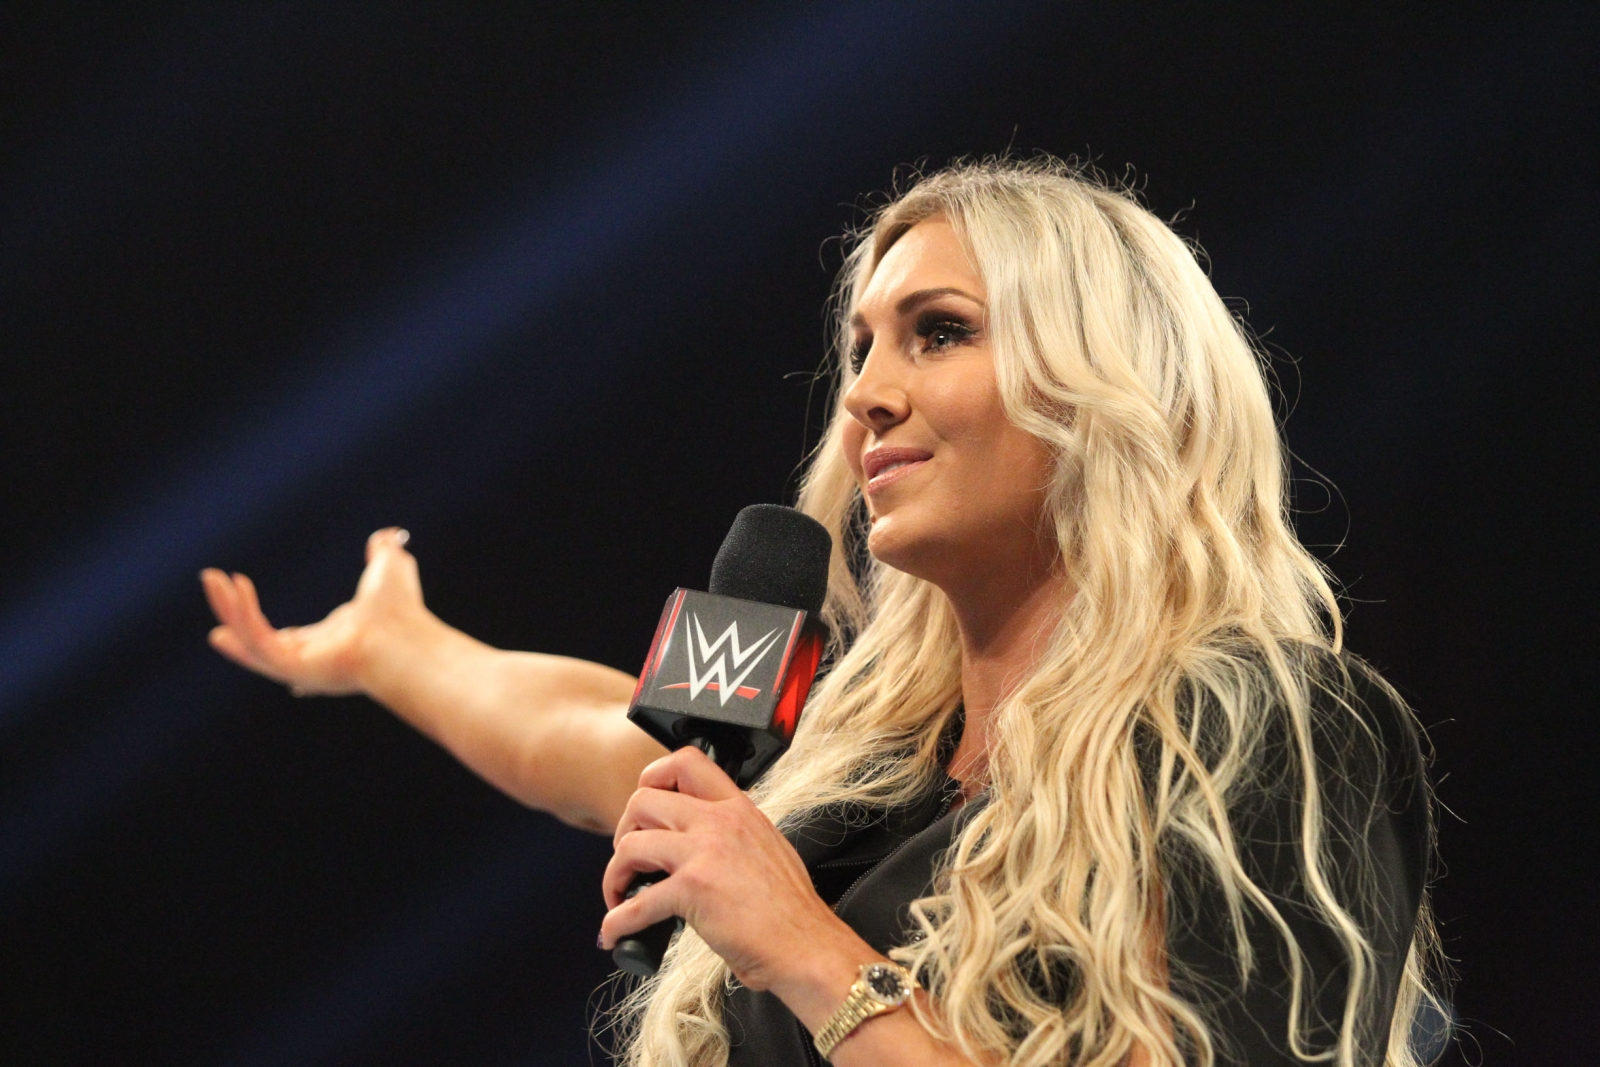 wwe star charlotte flair comments on her nude photos leaked online